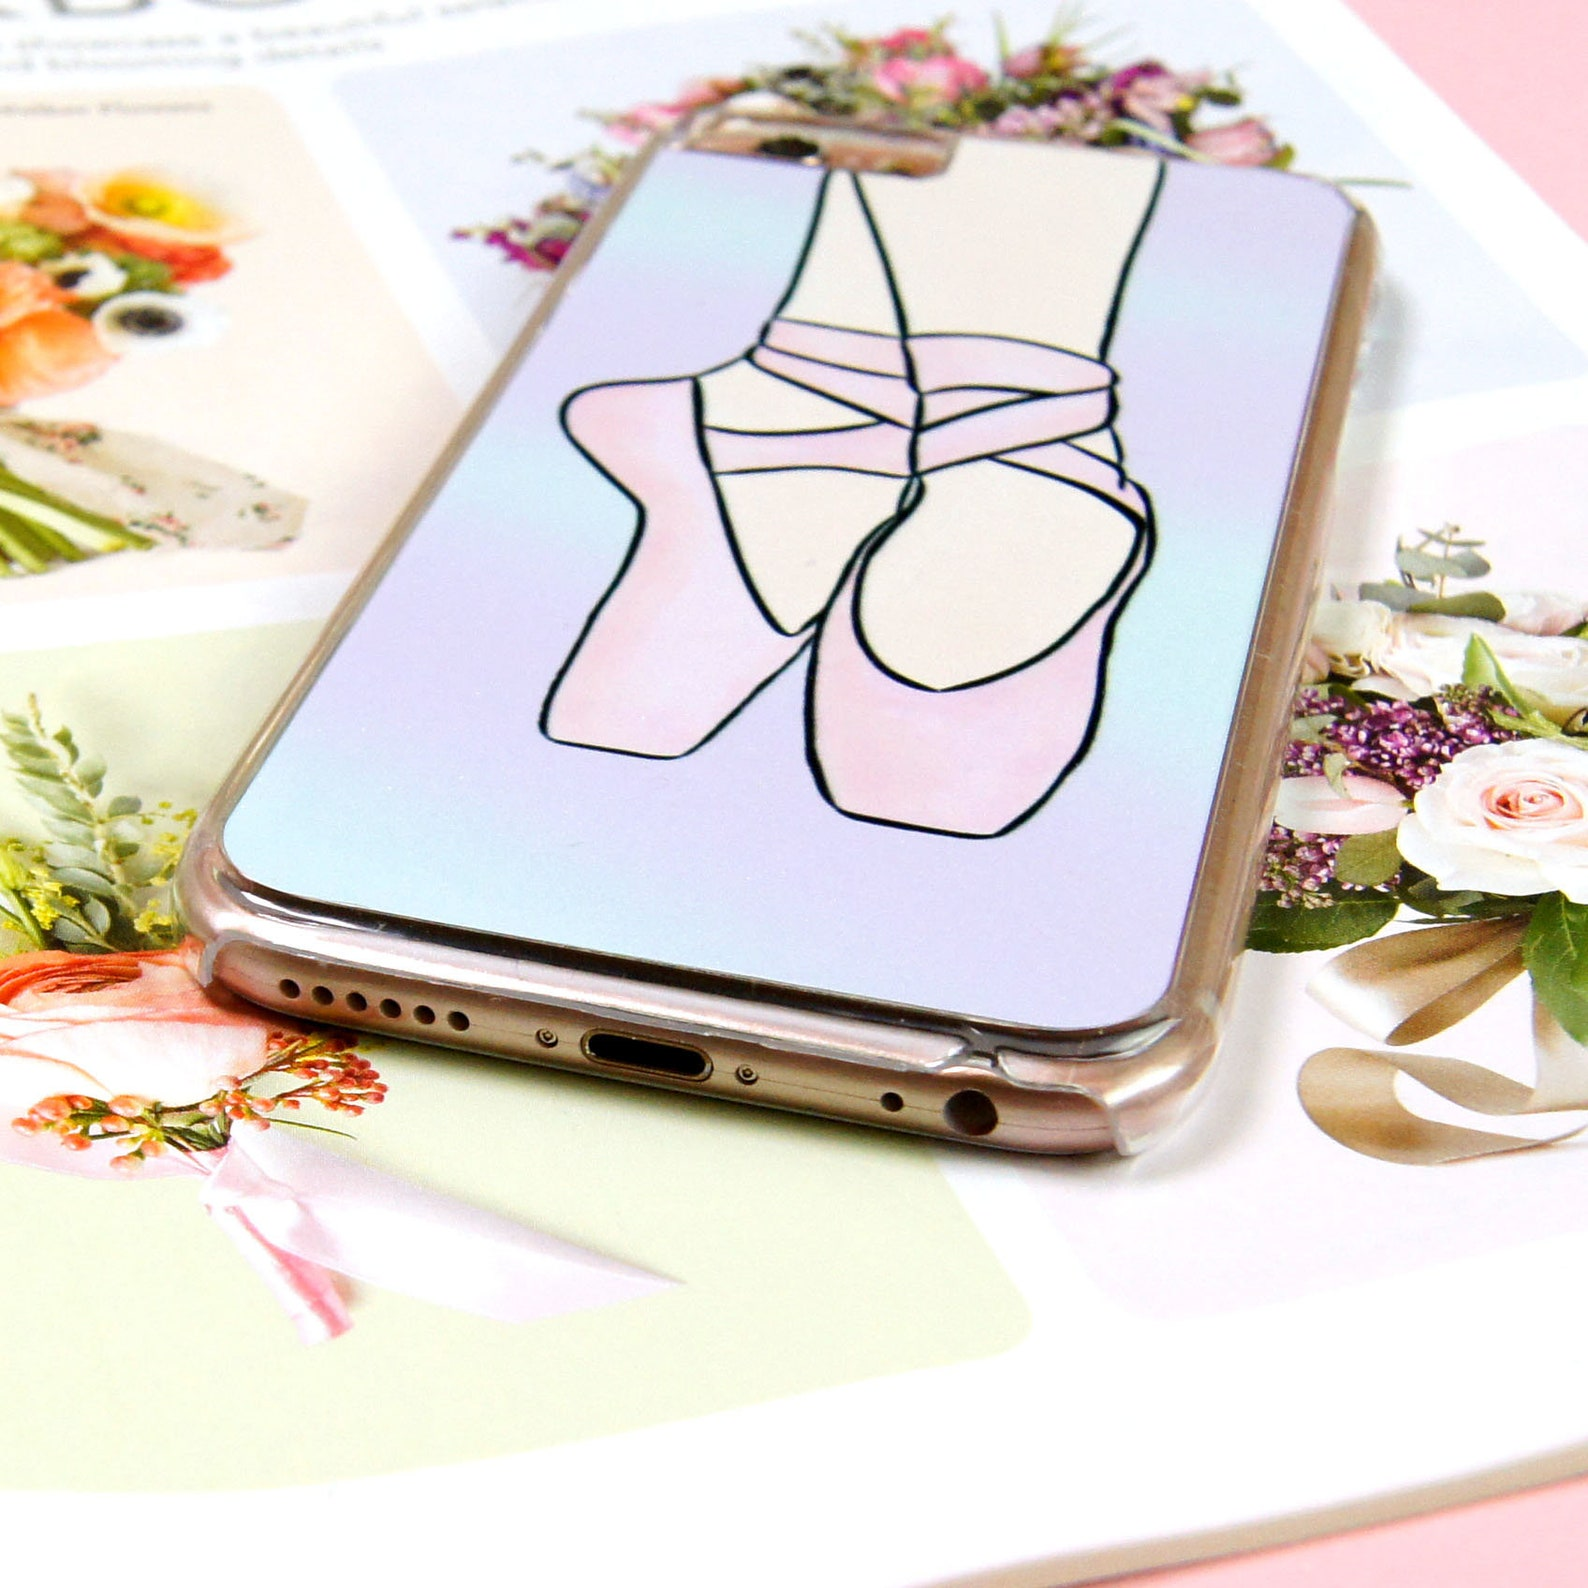 ballet pumps ballerina shoes custom made iphone 5/5s/se 6/6s 7 8 plus + x samsung s6 s7 s7 edge s8 s9 note 8 phone case/cover